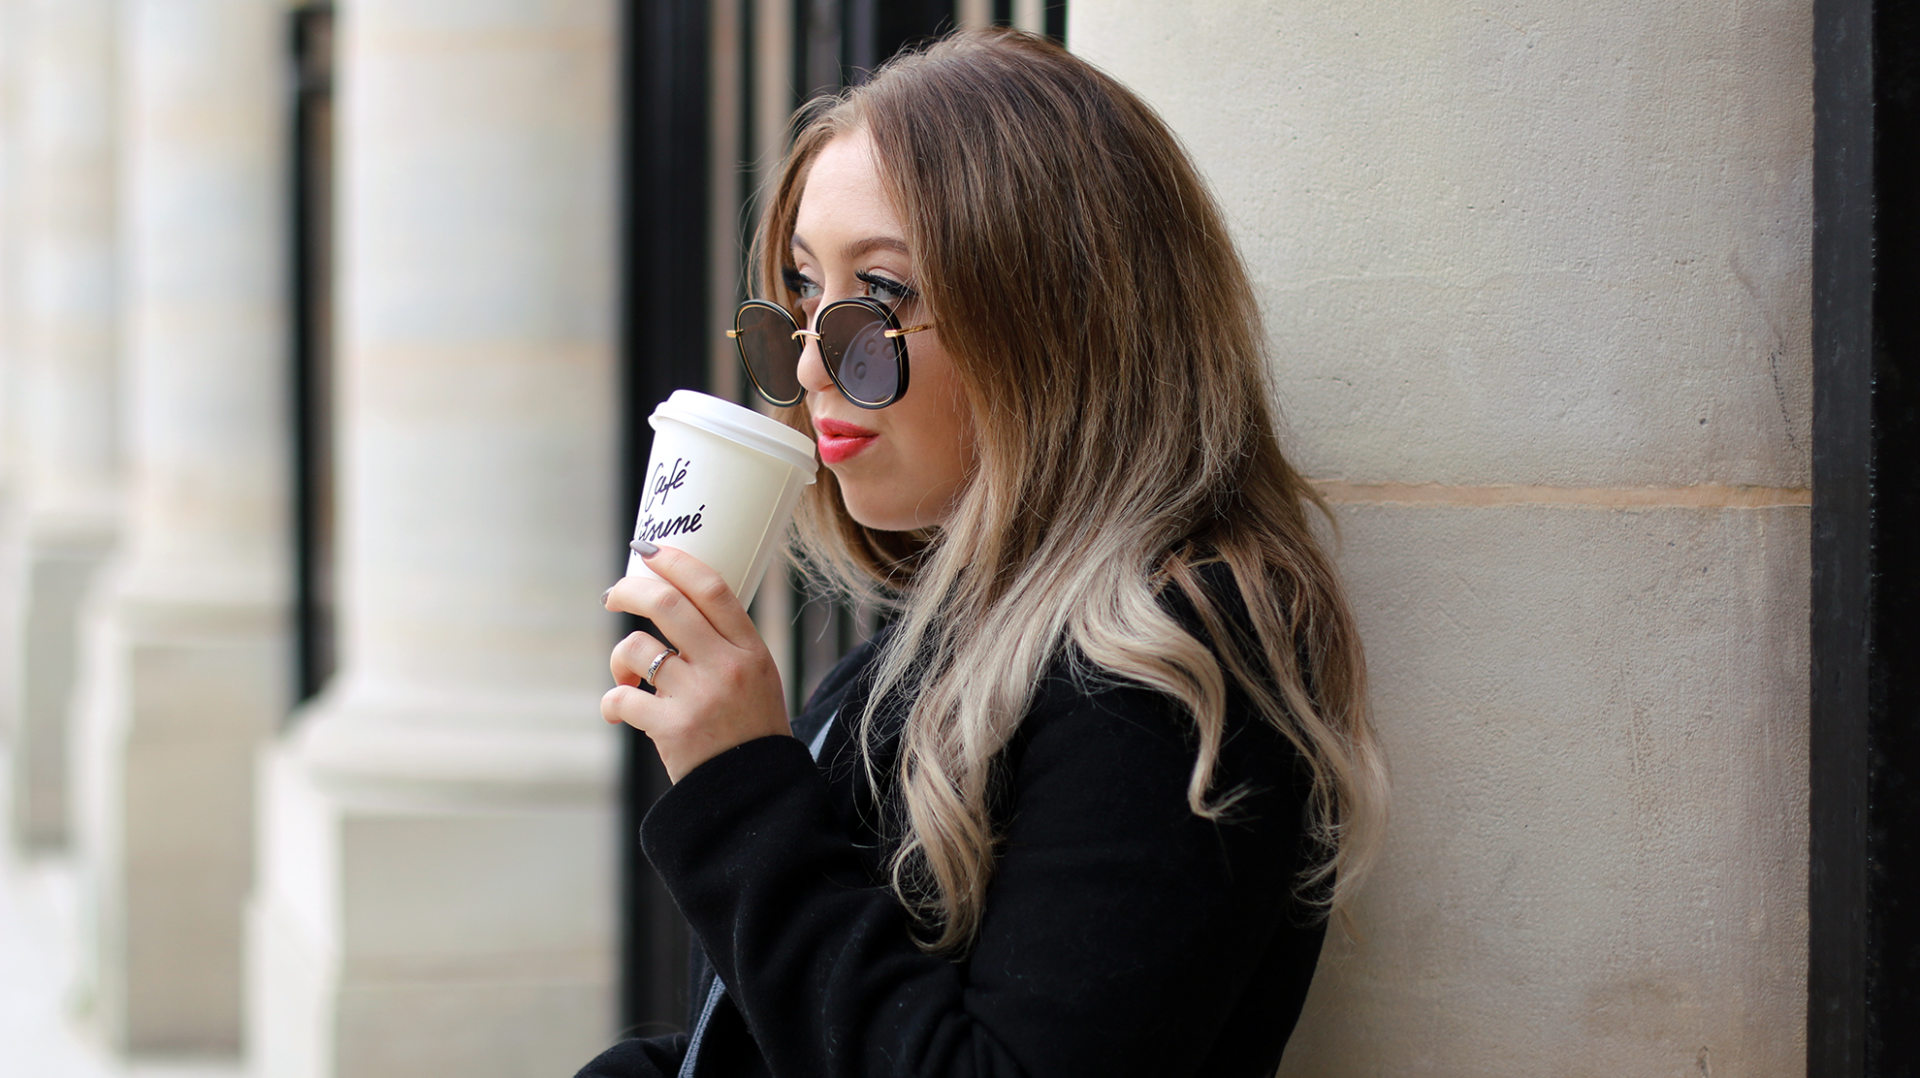 Café Latte & New Sunnies in Paris.